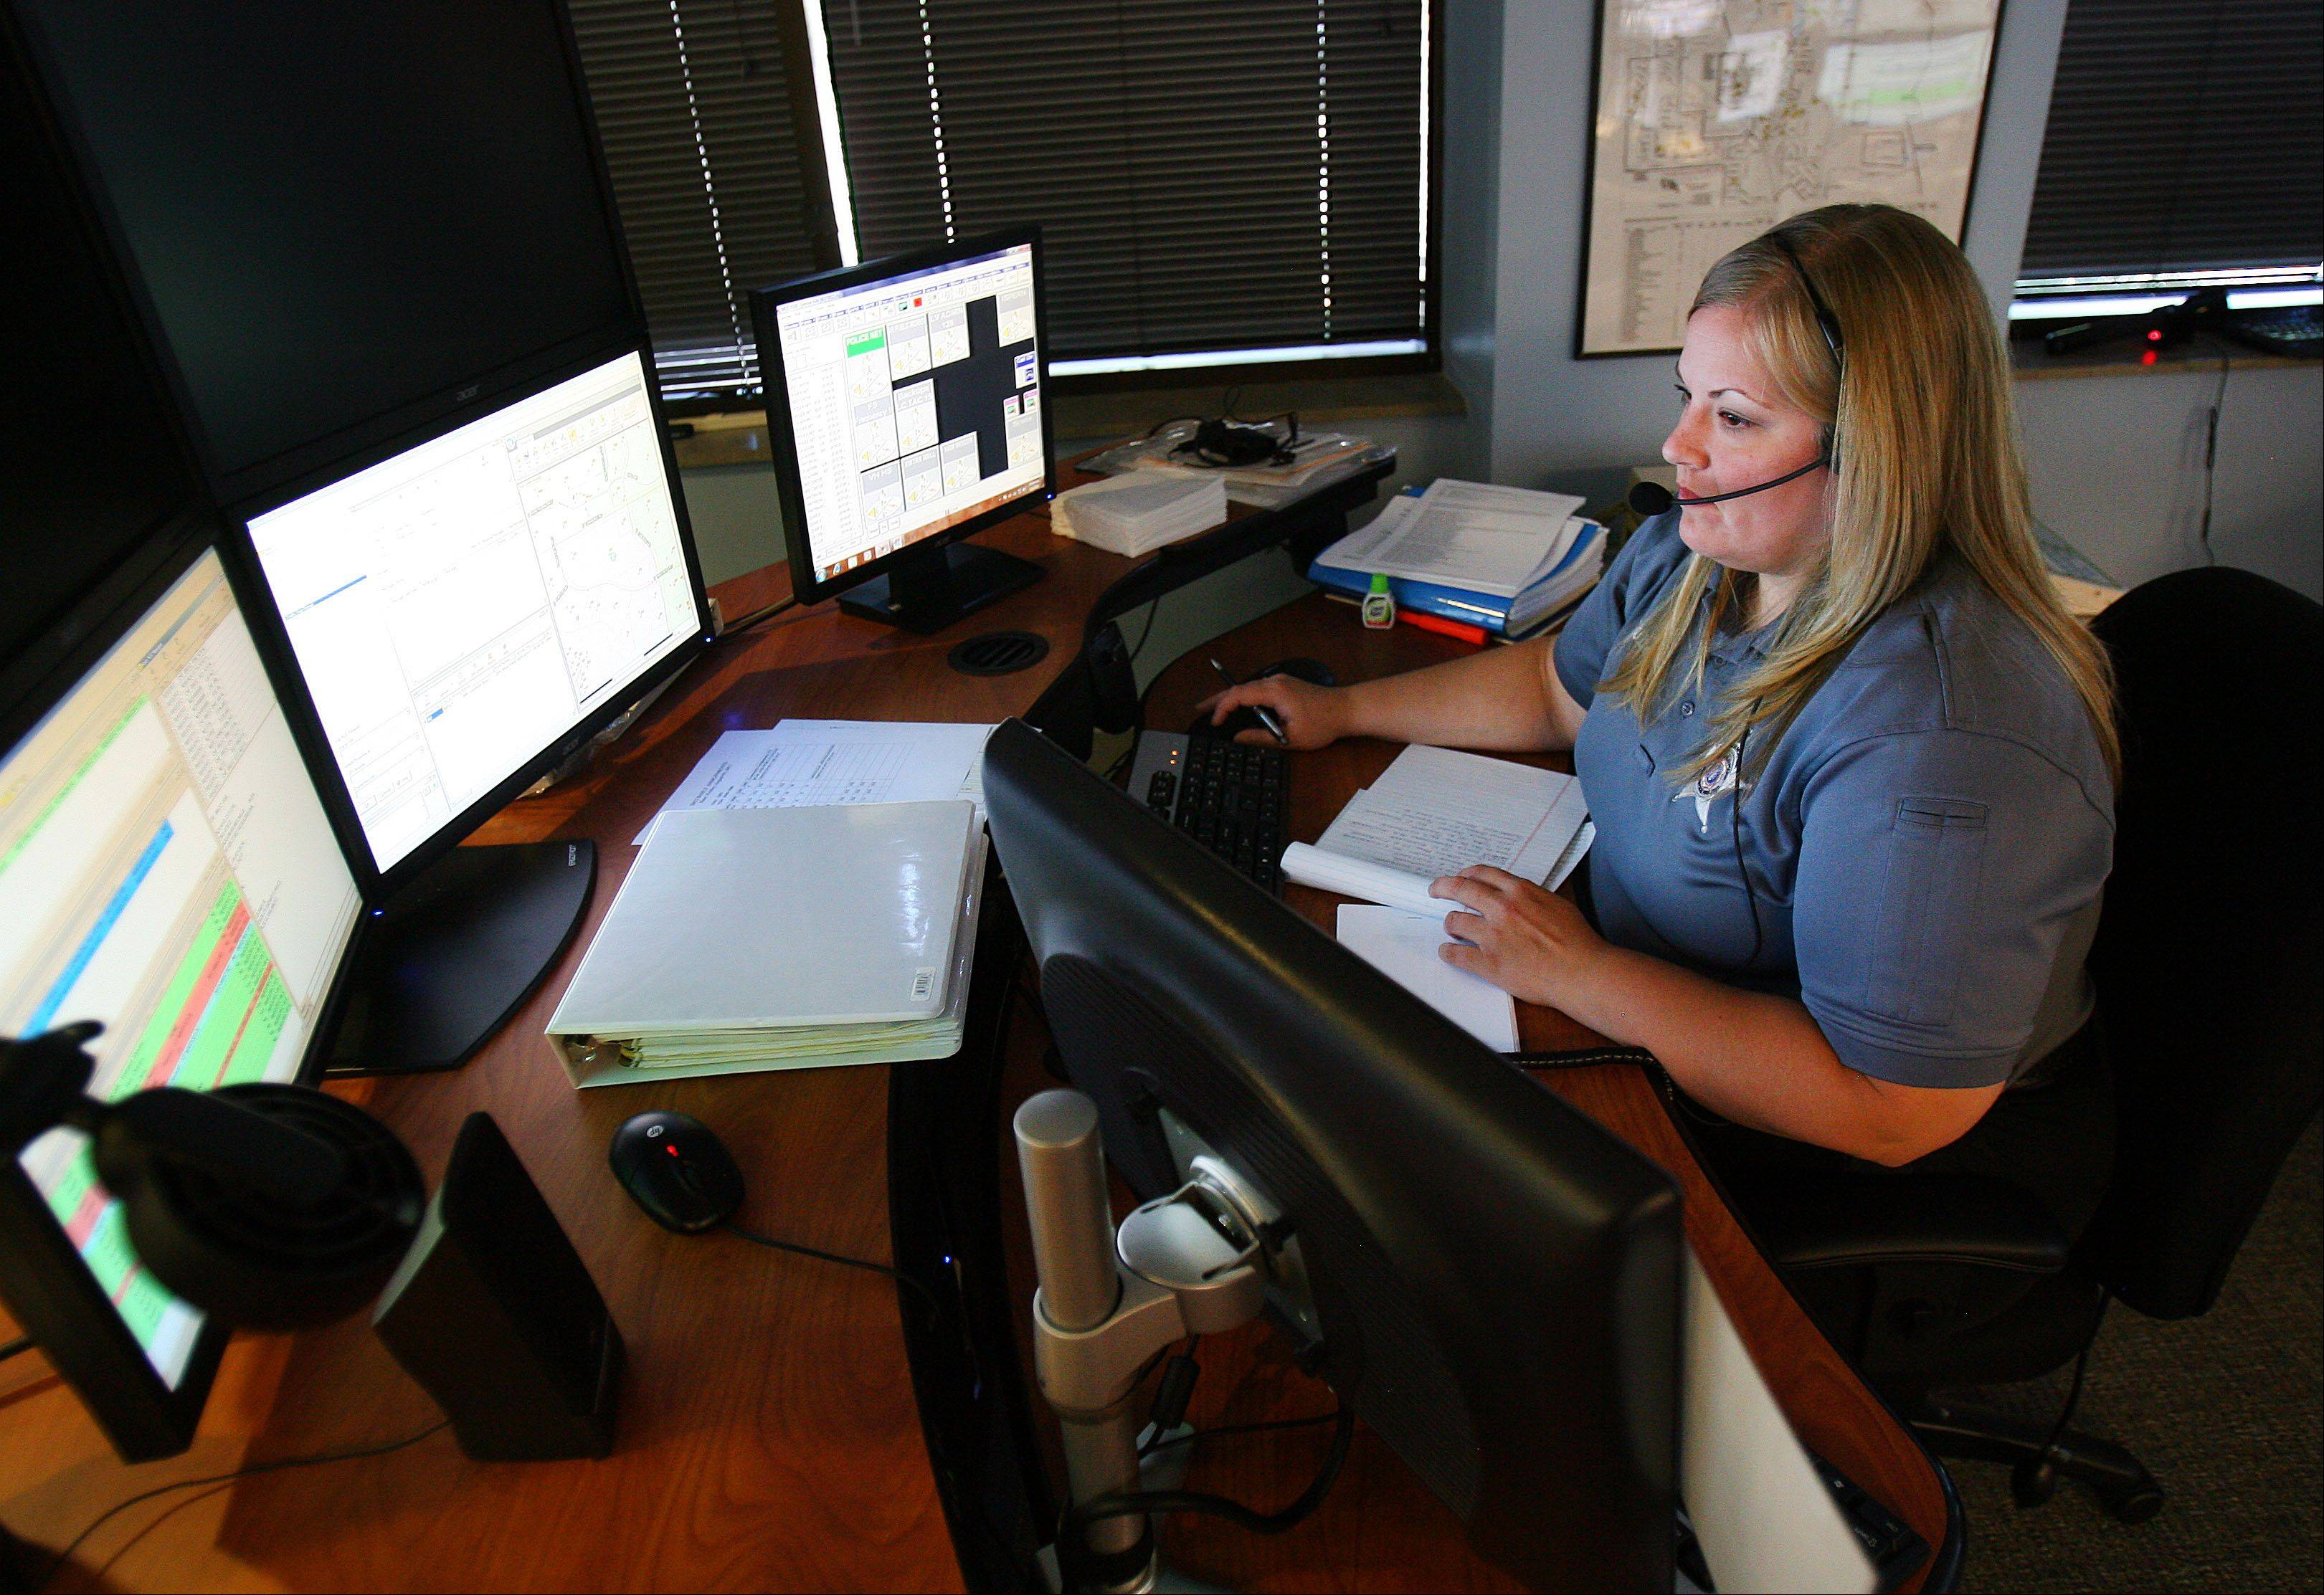 Vernon Hills Police dispatcher Sarah Silliman works in the Vernon Hills dispatch center.